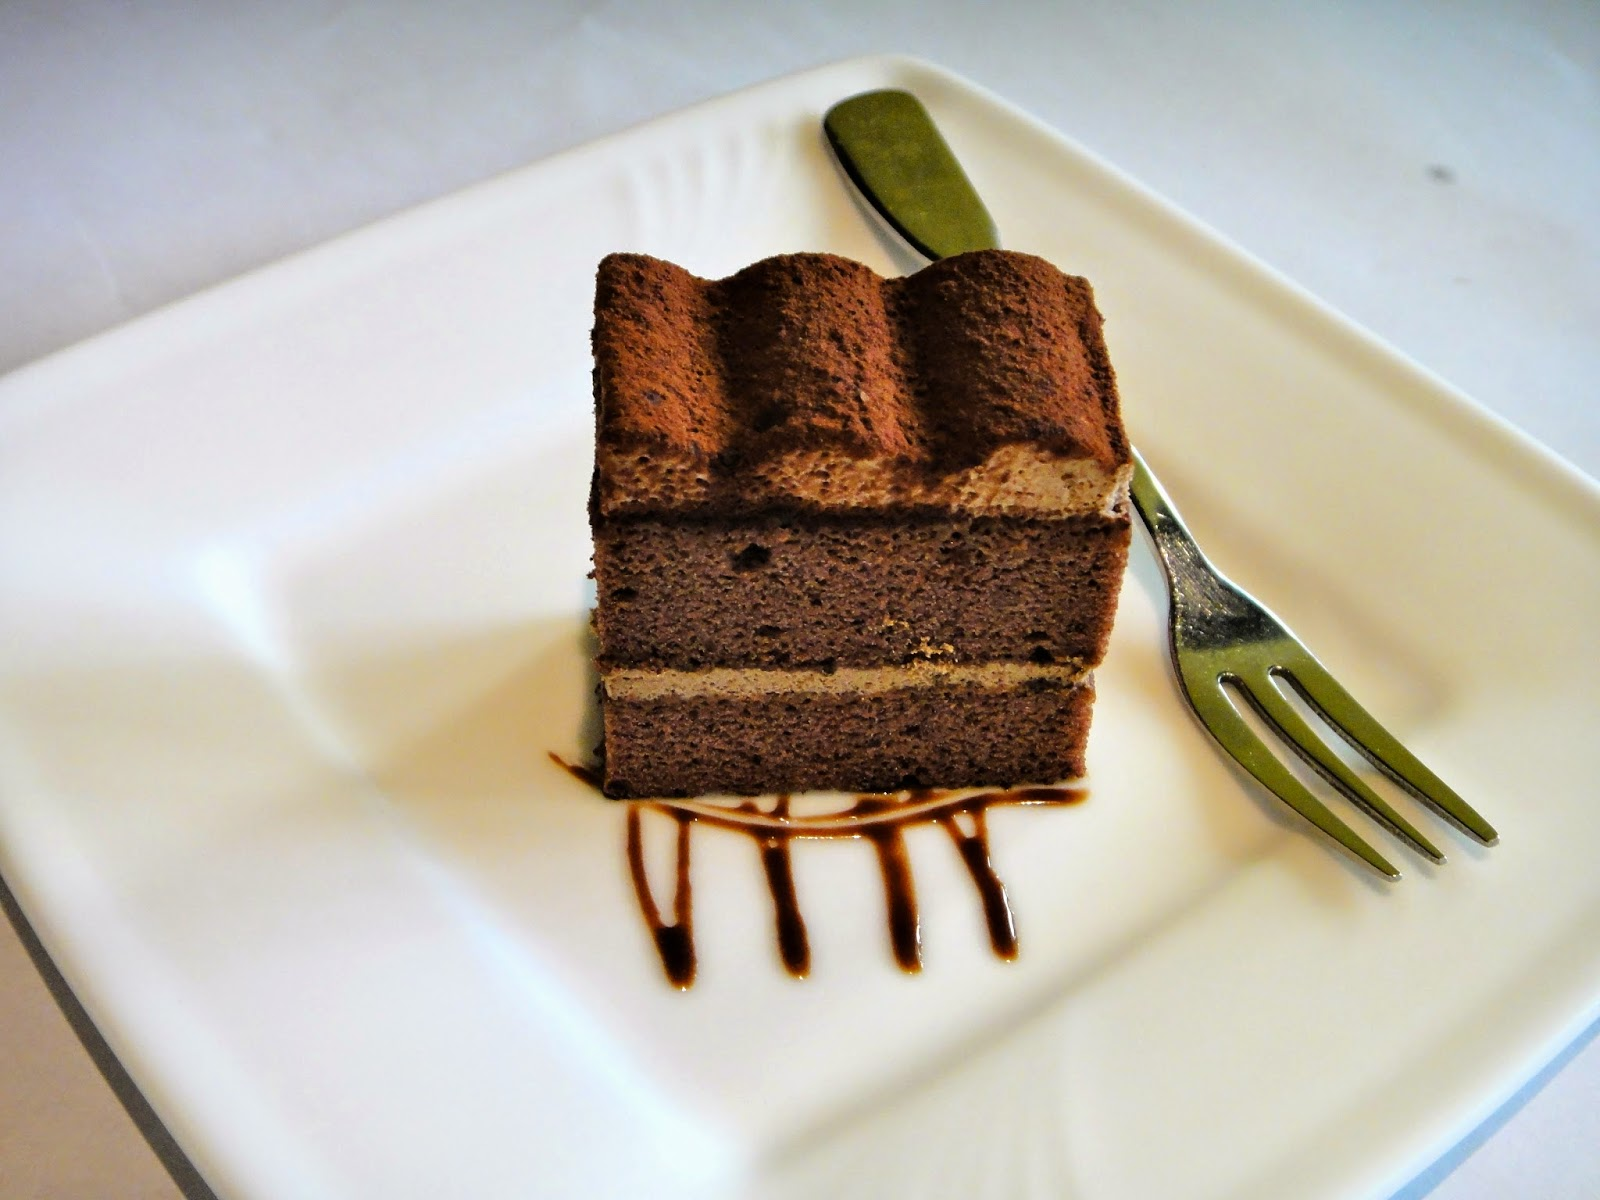 Chocolate Cake Mr J French Italian Restaurant Taipei Taiwan